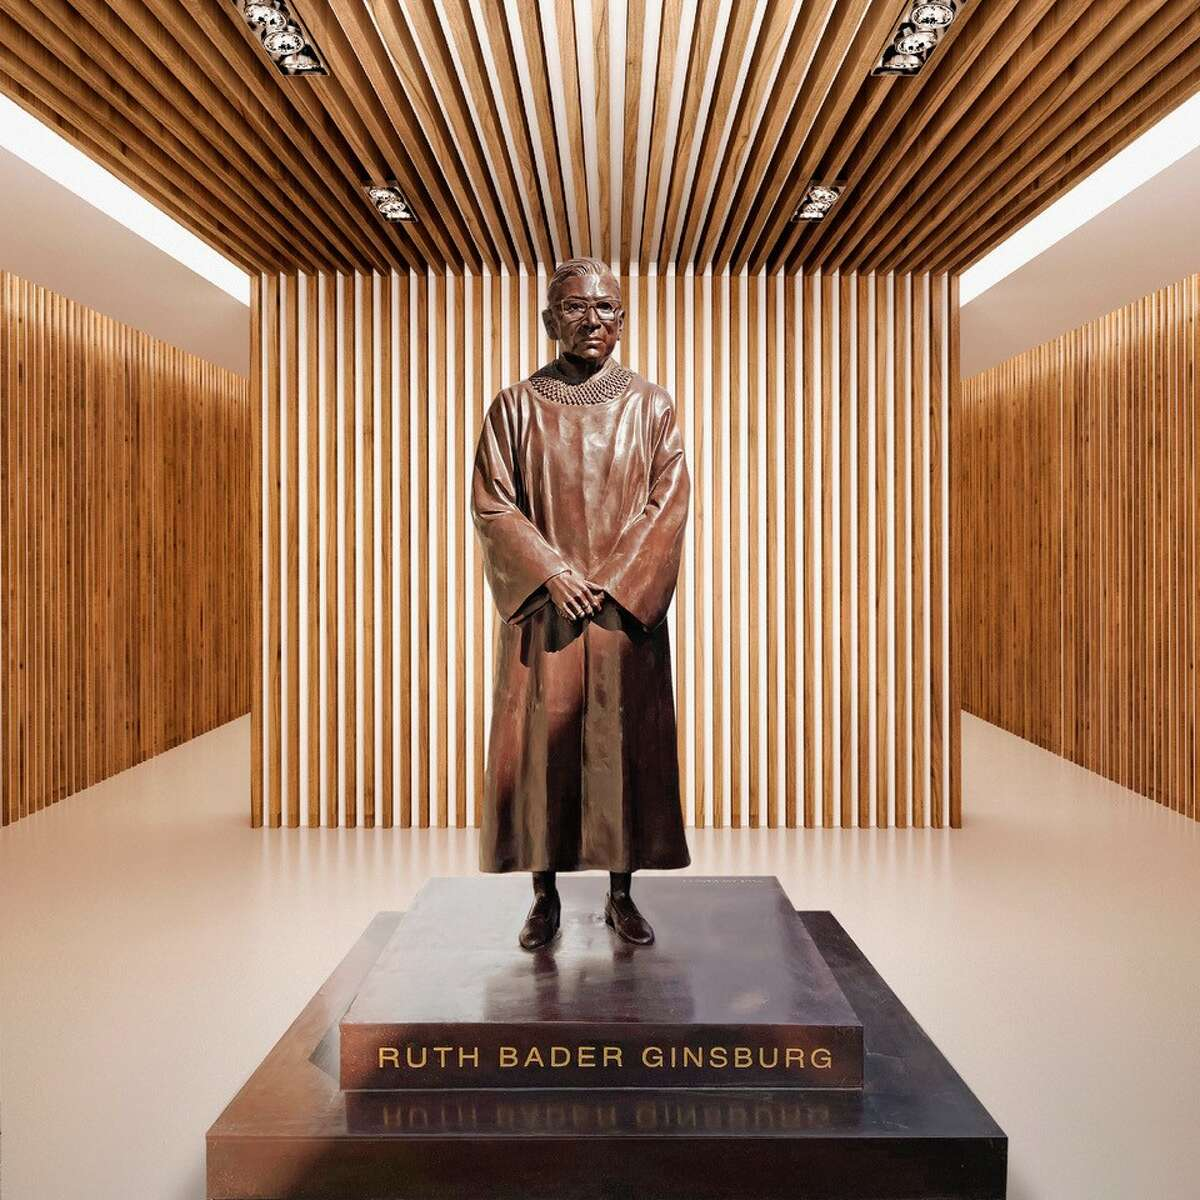 Ginsburg's statue will be unveiled on March 15, 2021, to honor Women's History Month and her 88th birthday.